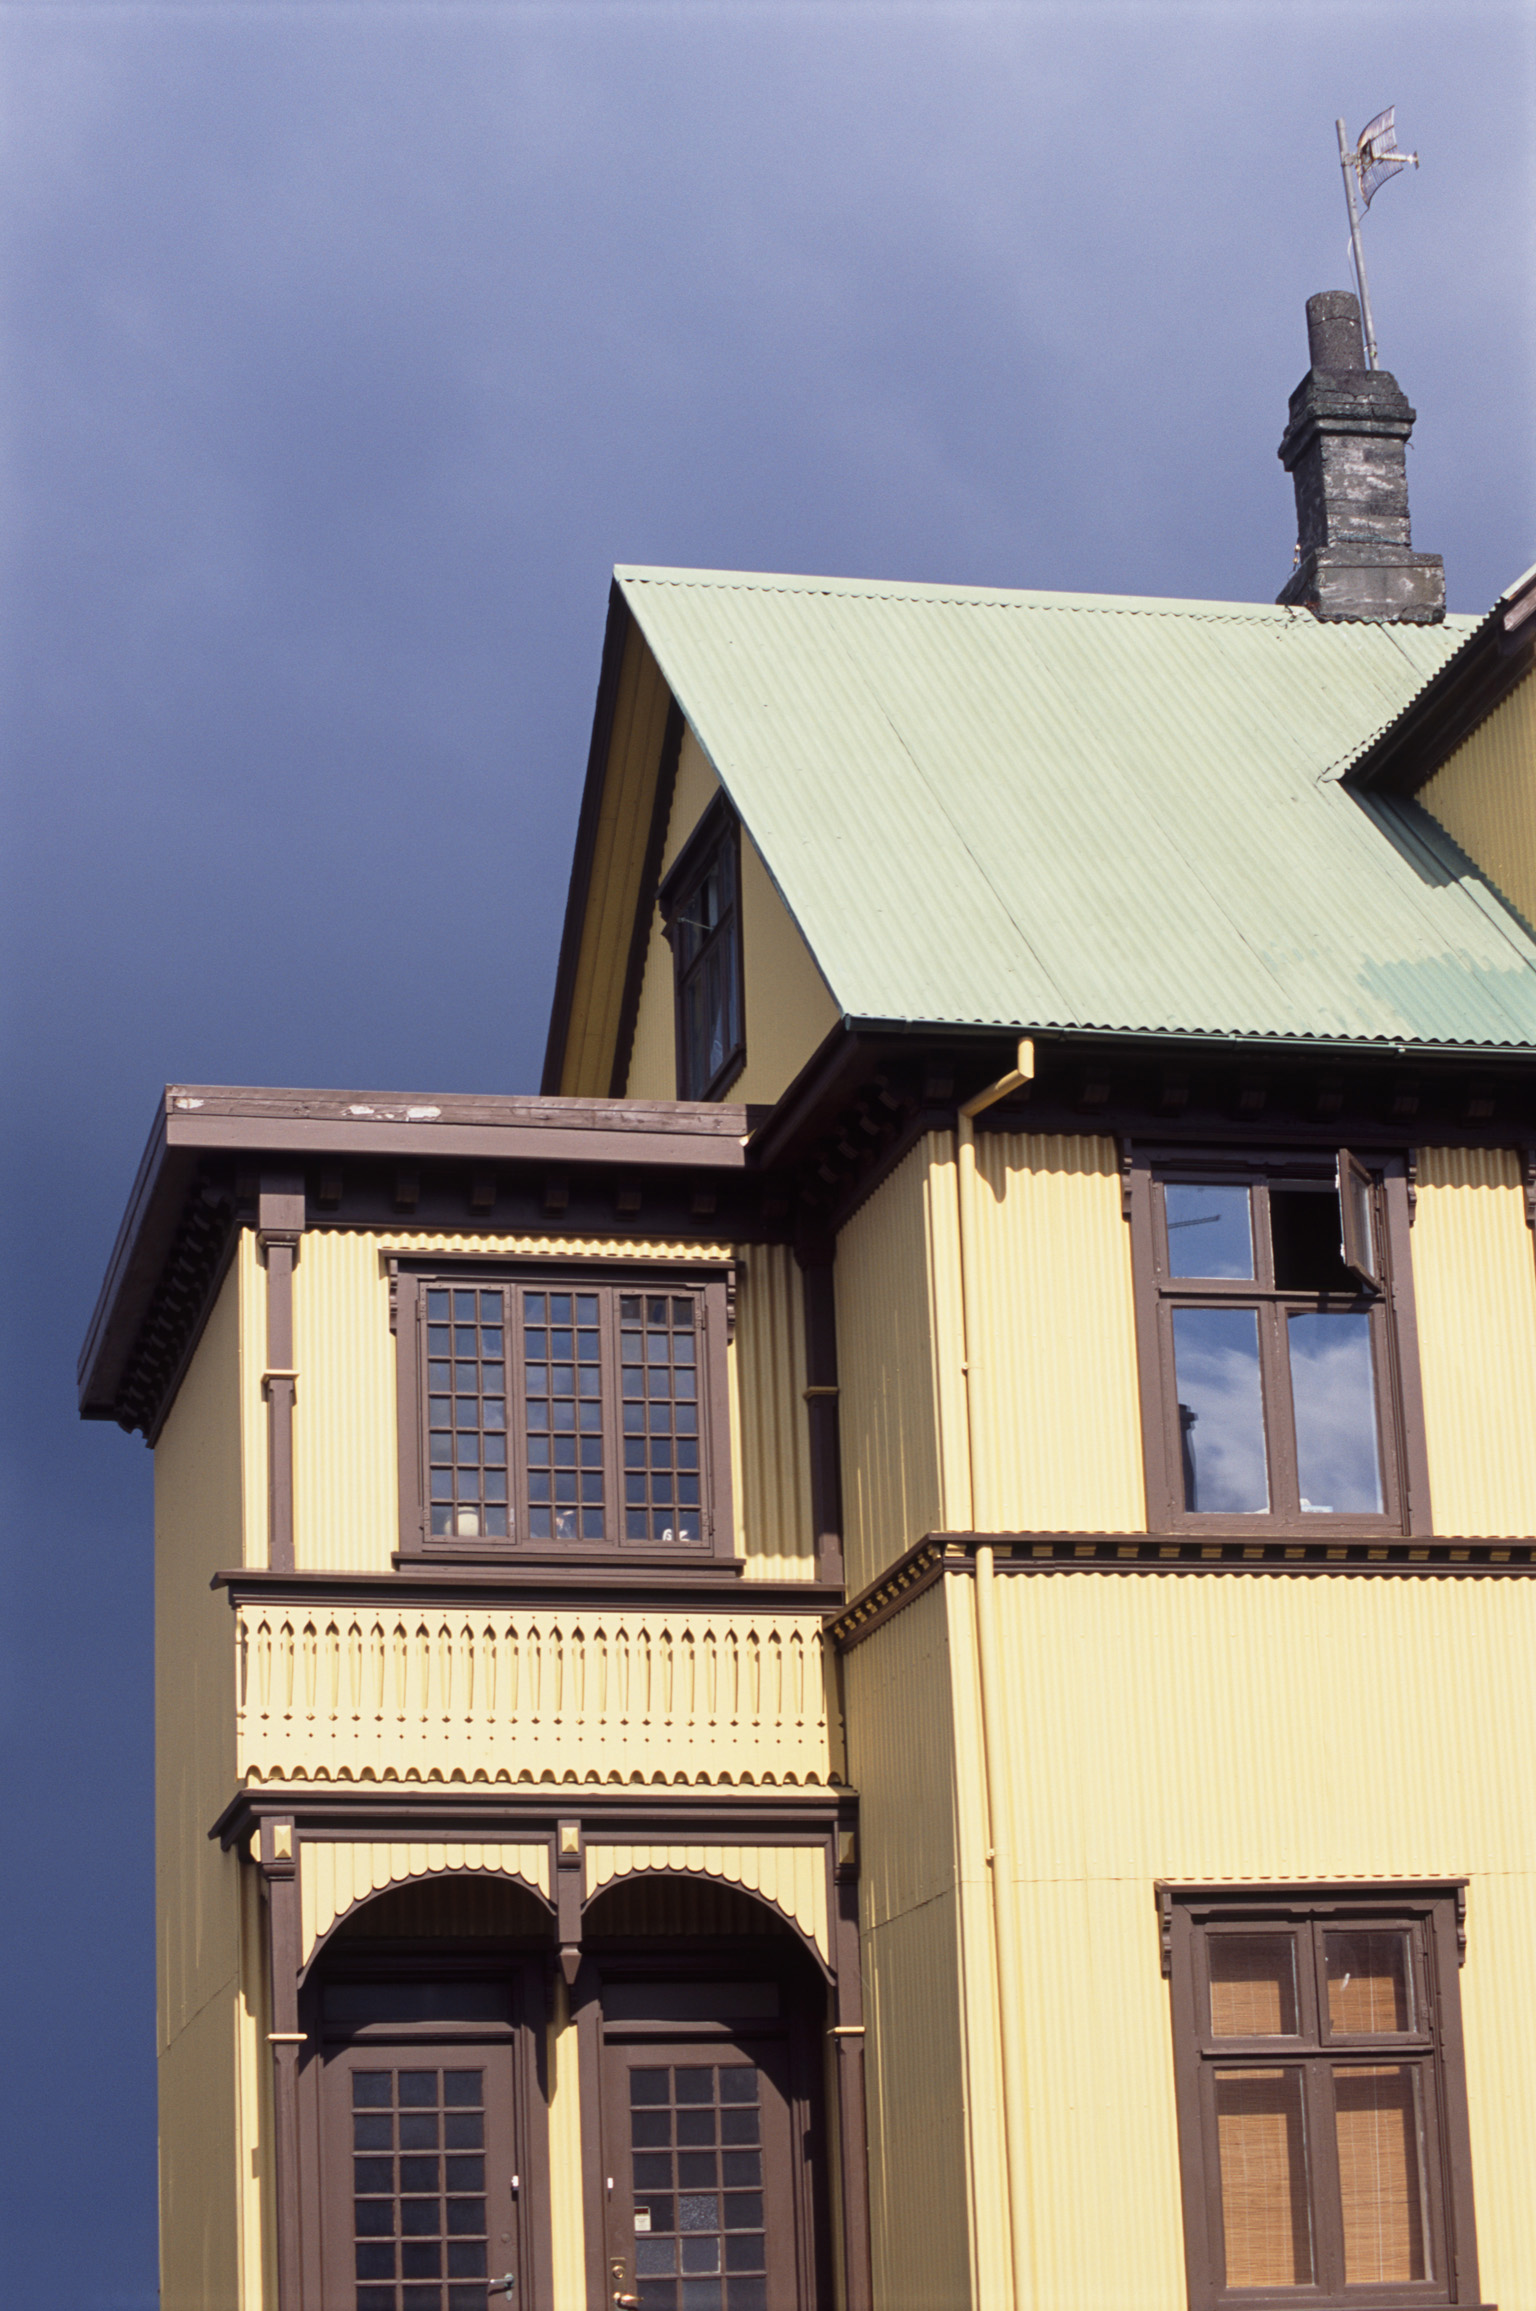 Exterior view of the typical architectural style of a Reykjavik house, Iceland against a blue sky